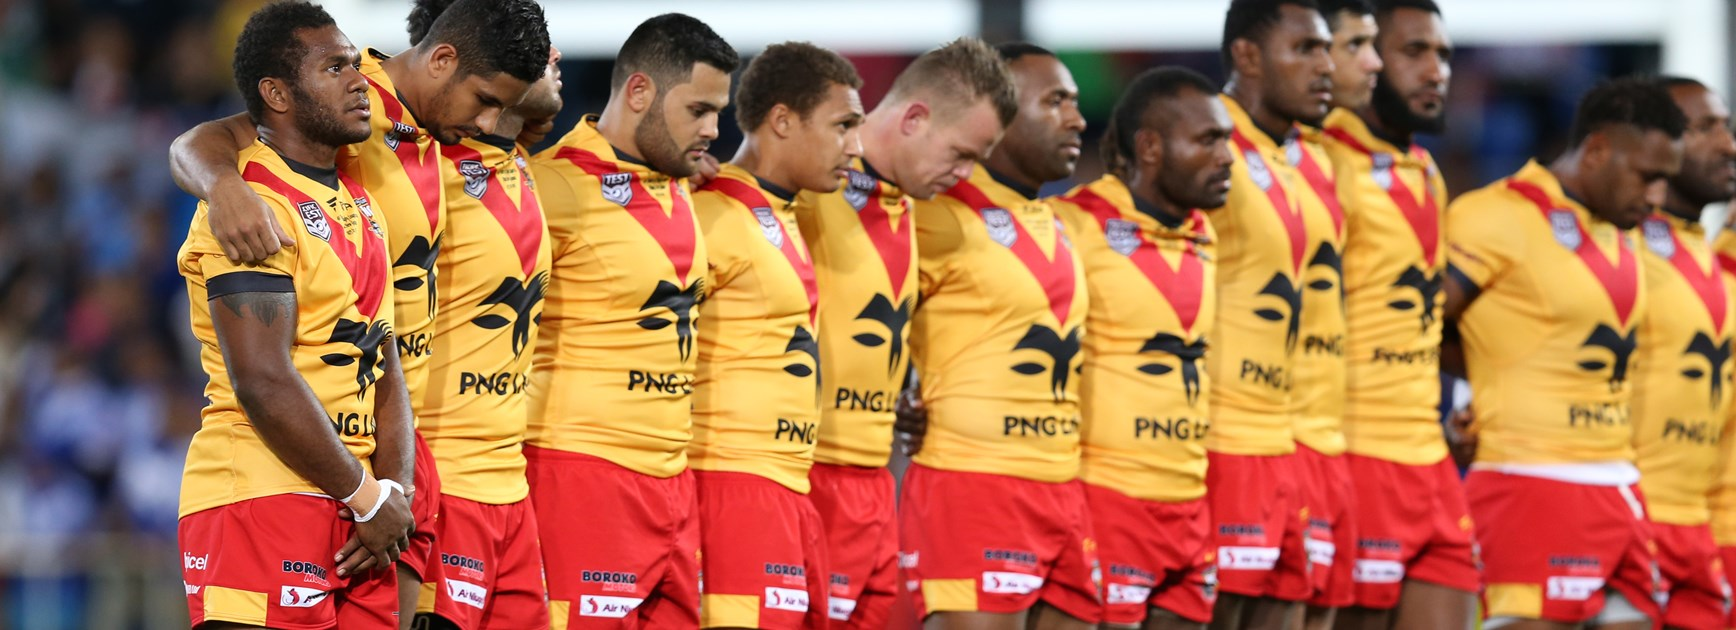 Ottio funeral told of loyalty to PNG